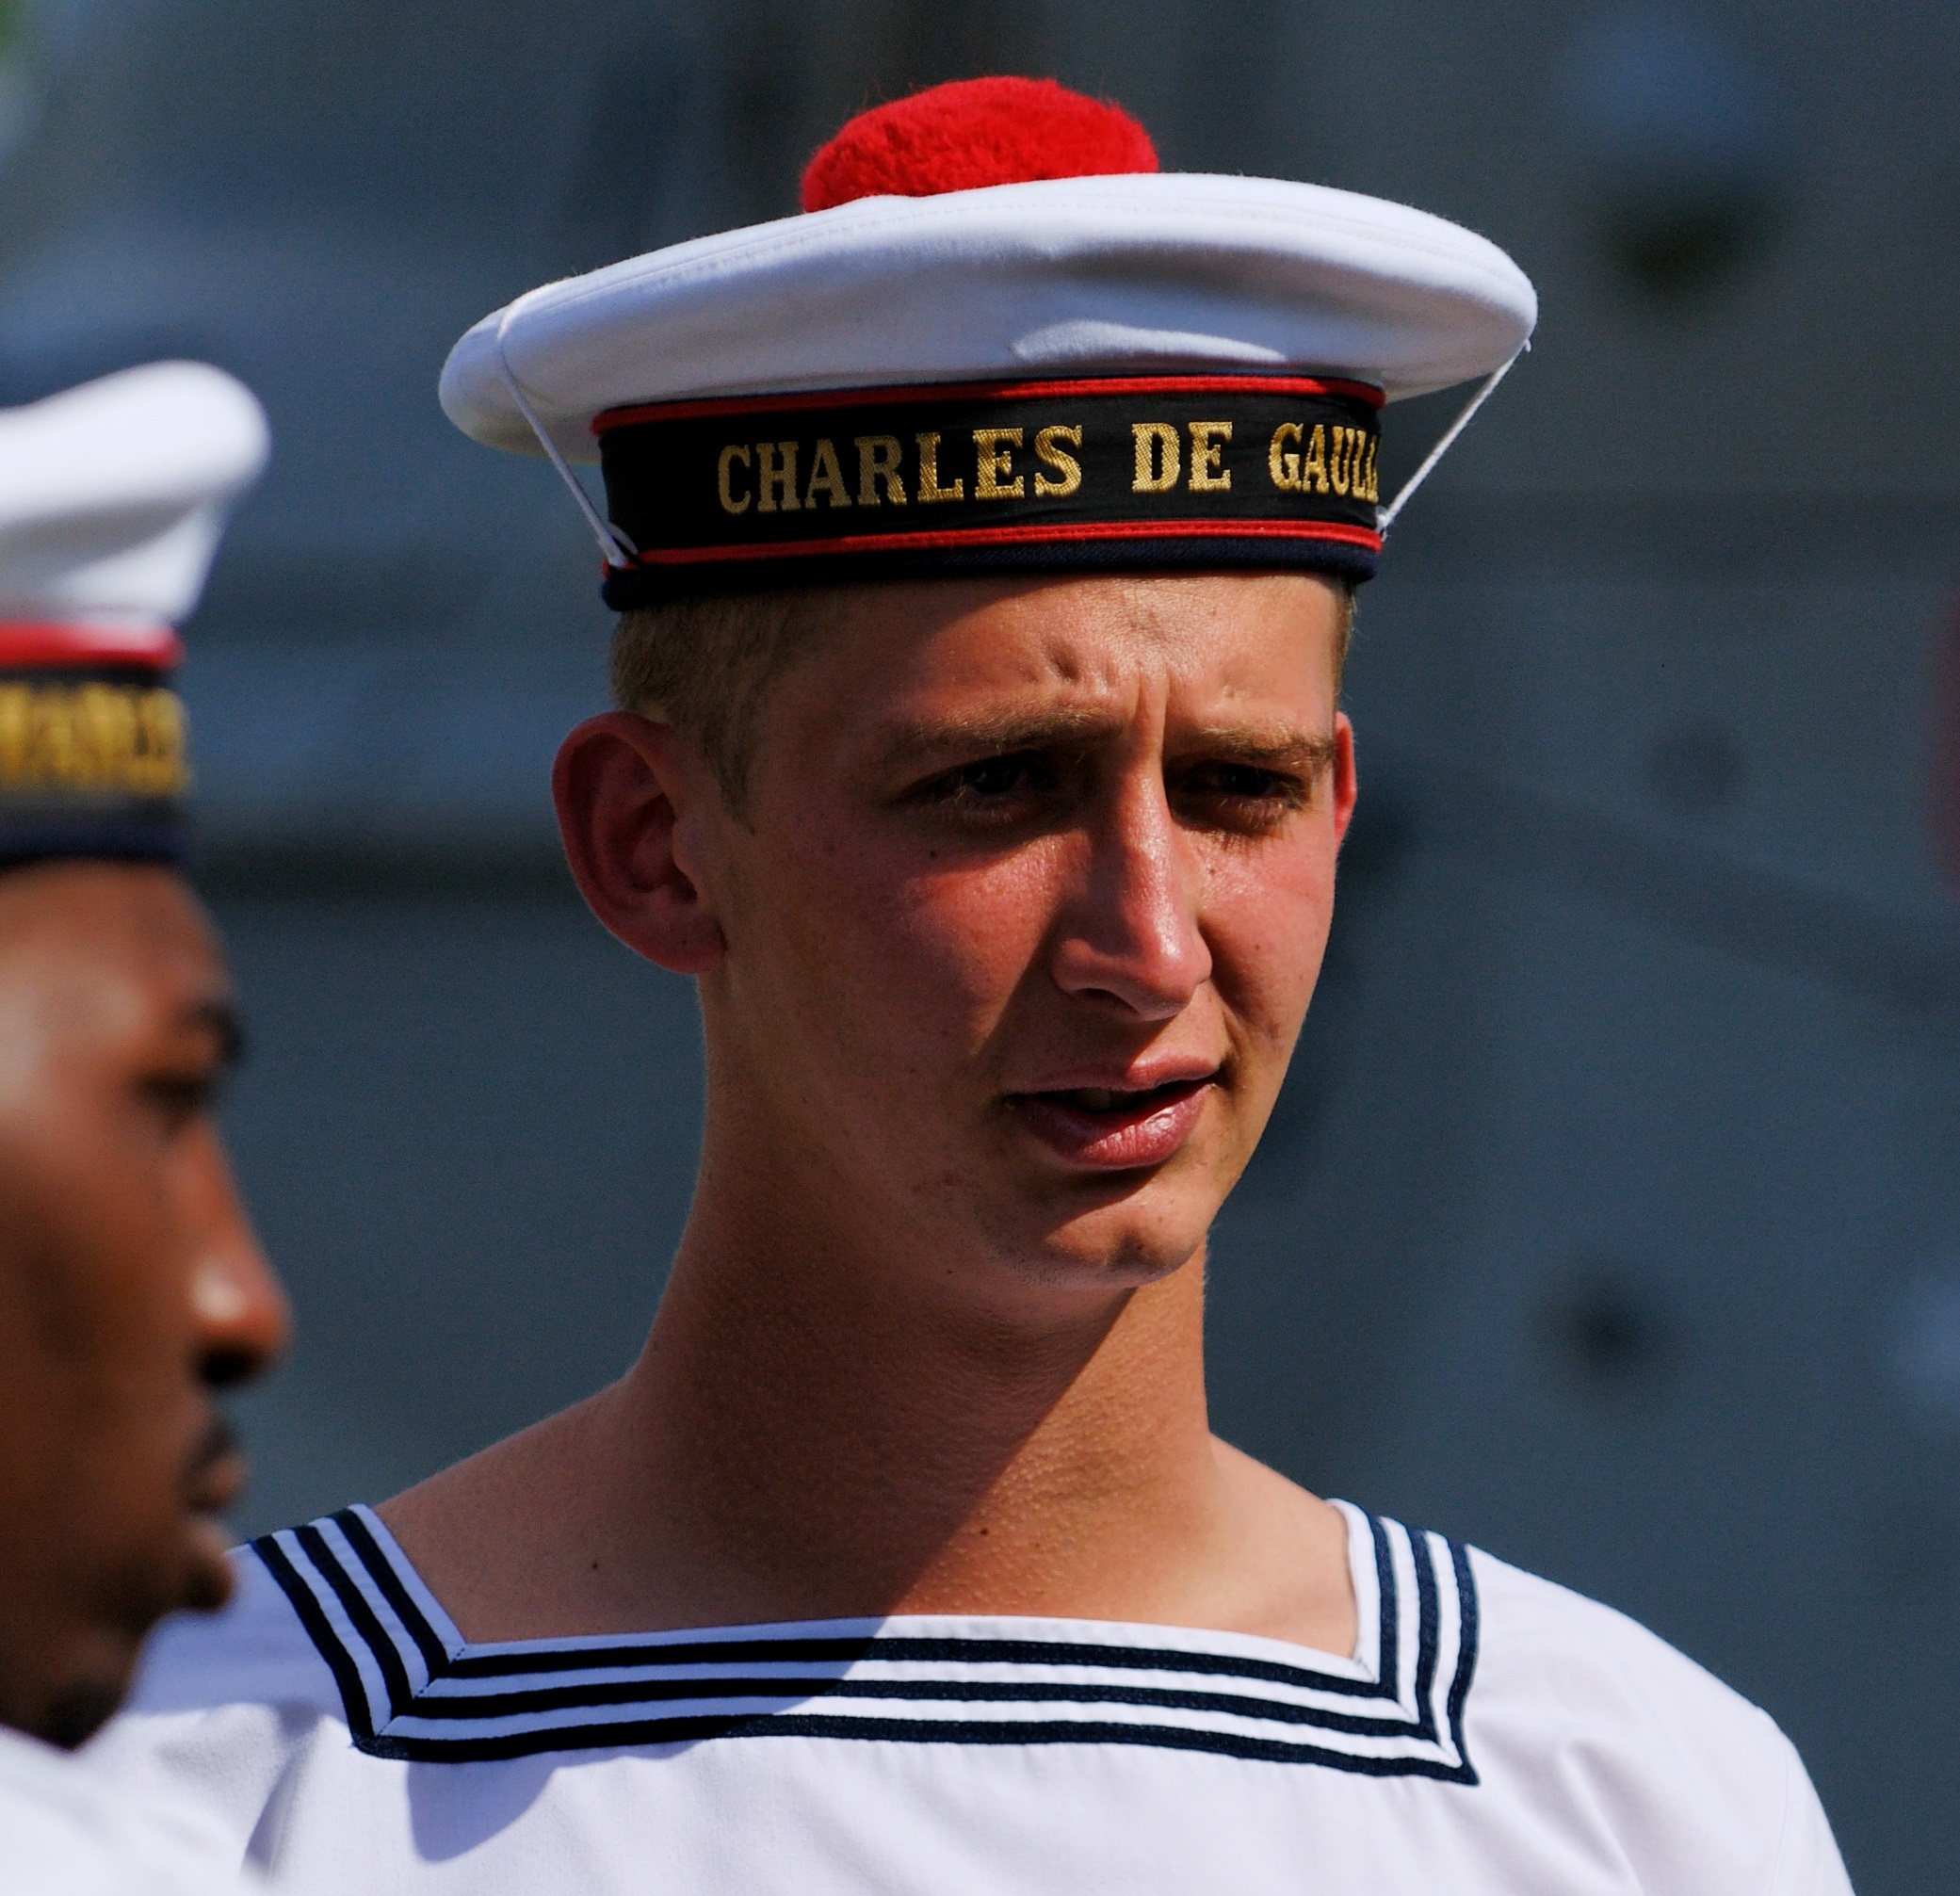 A young Charles de Gaulle as a sailor.